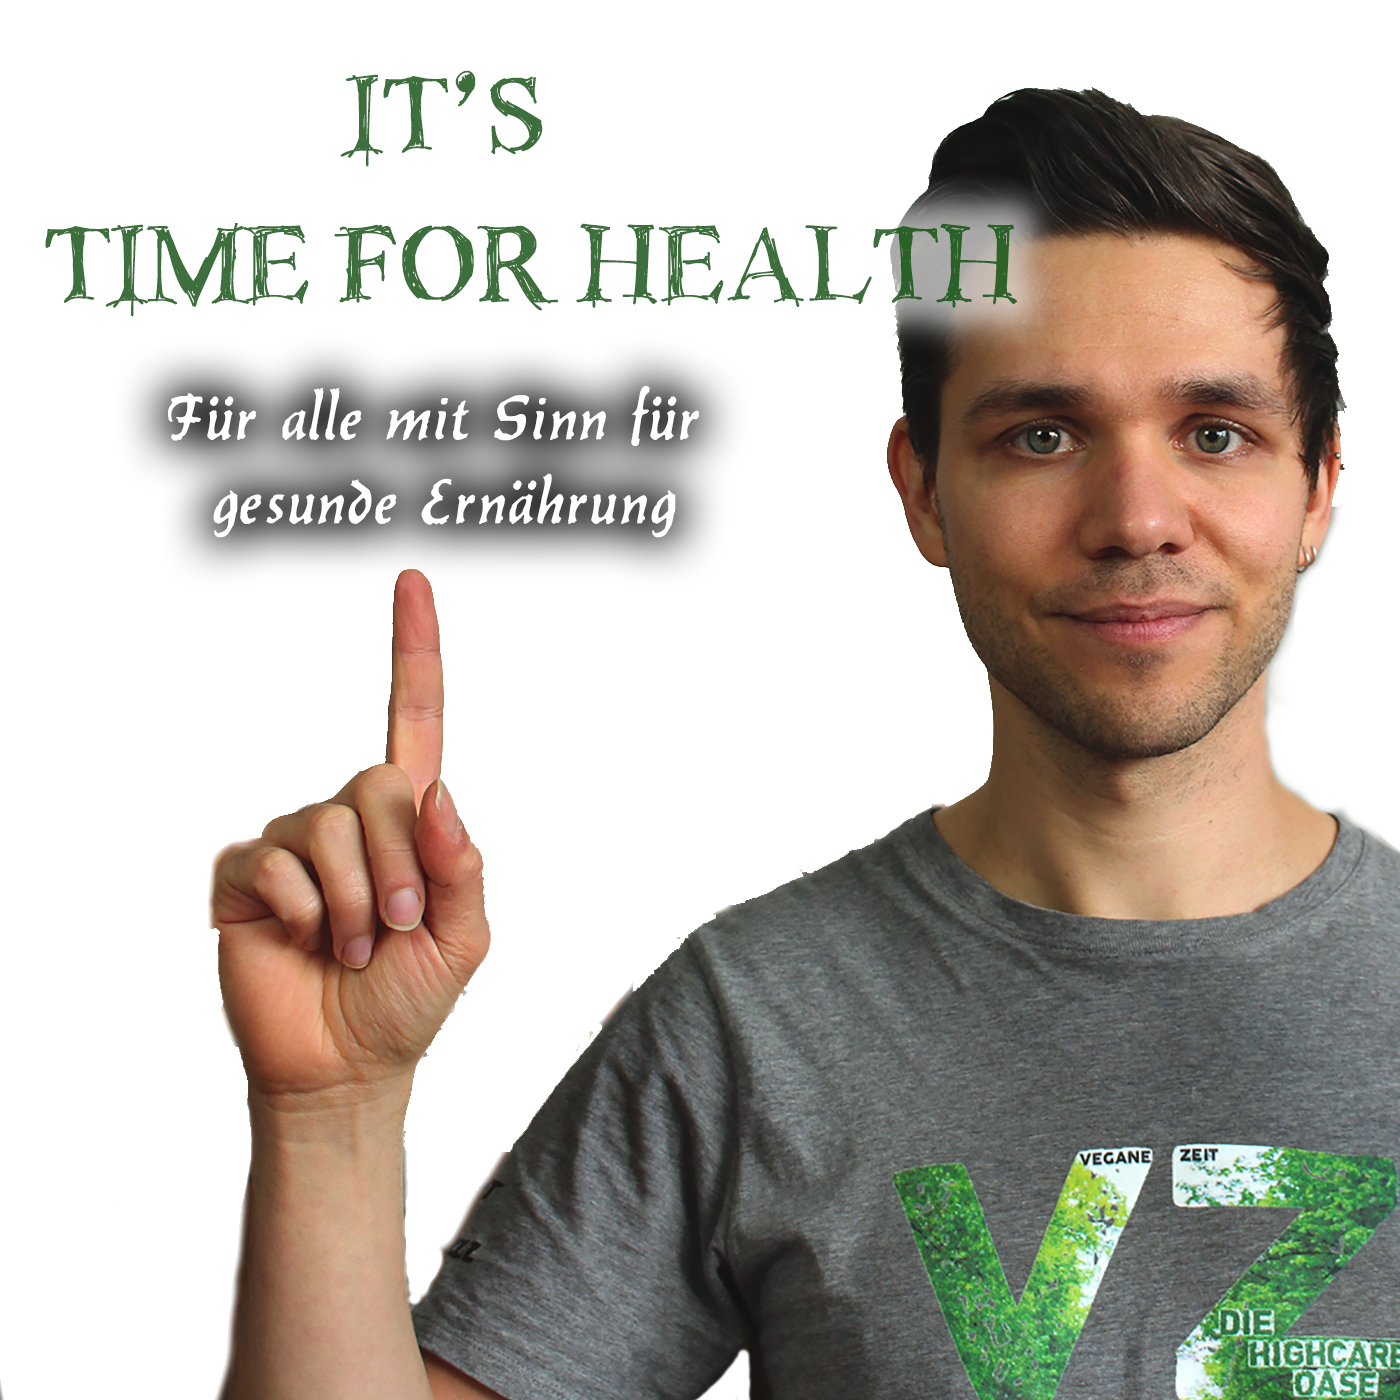 It's time for health